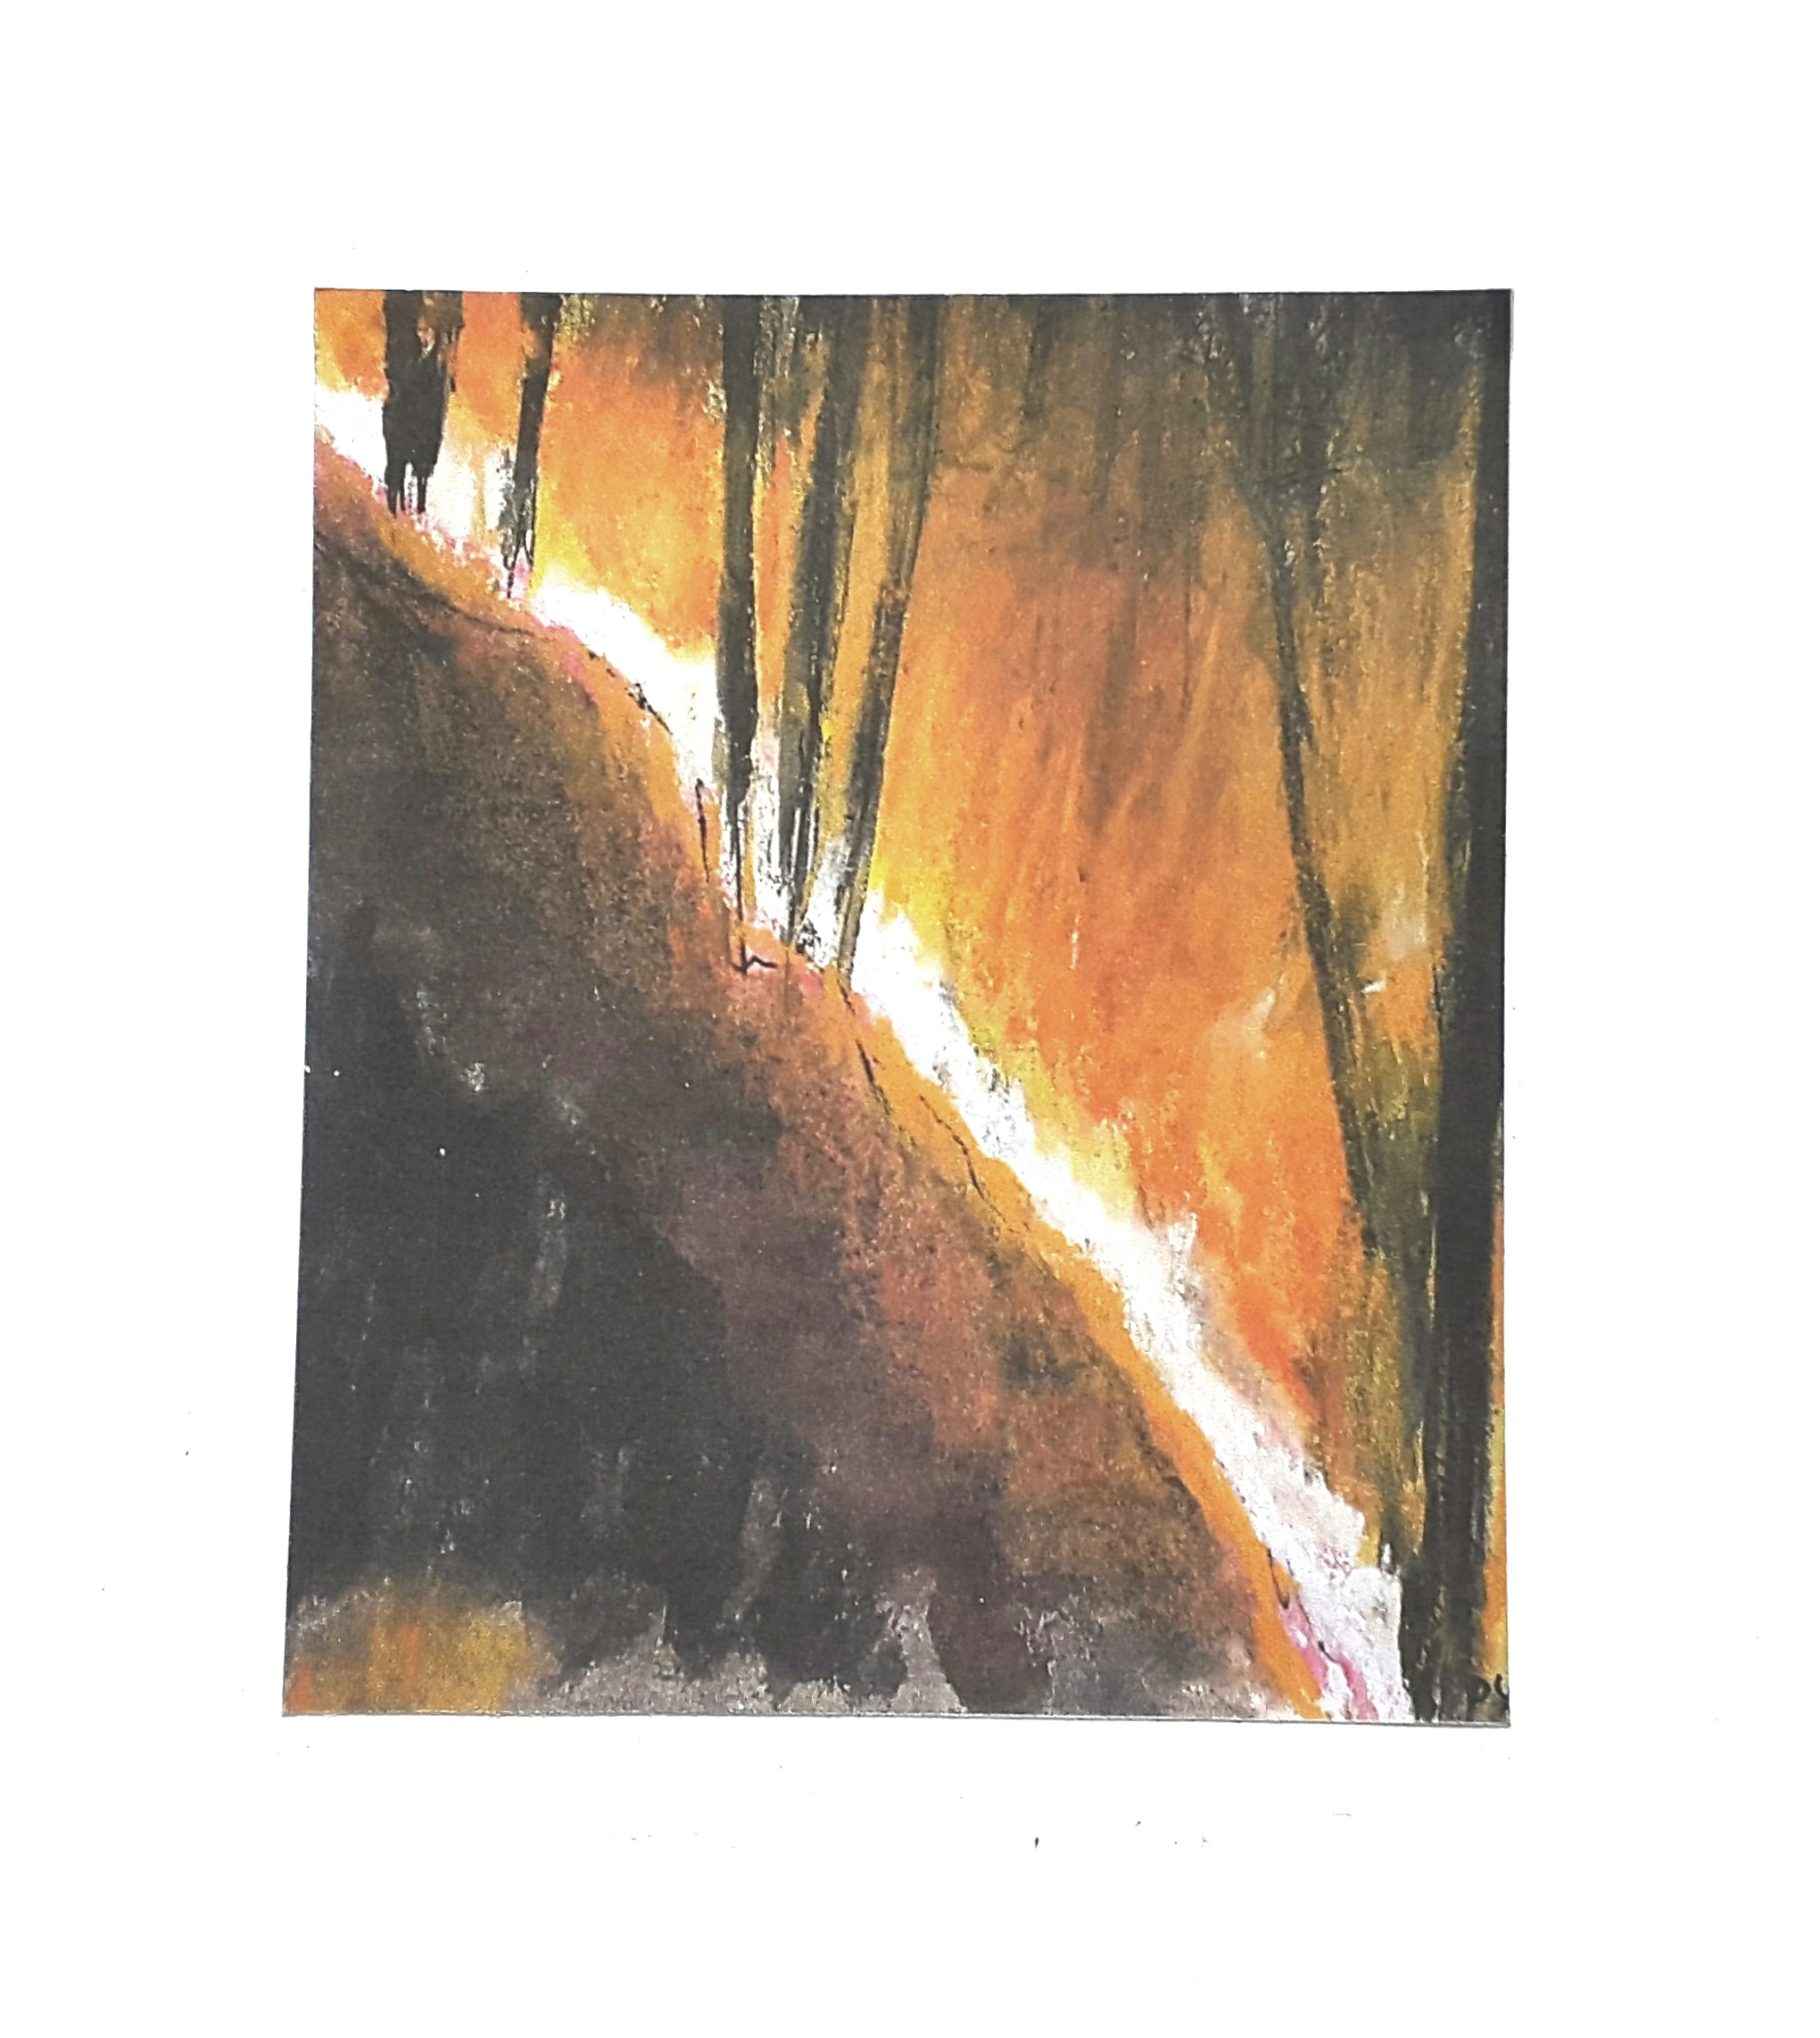 57 Adversity series, Wildfire, 10 x 12 cm, pastel and mixed media on paper